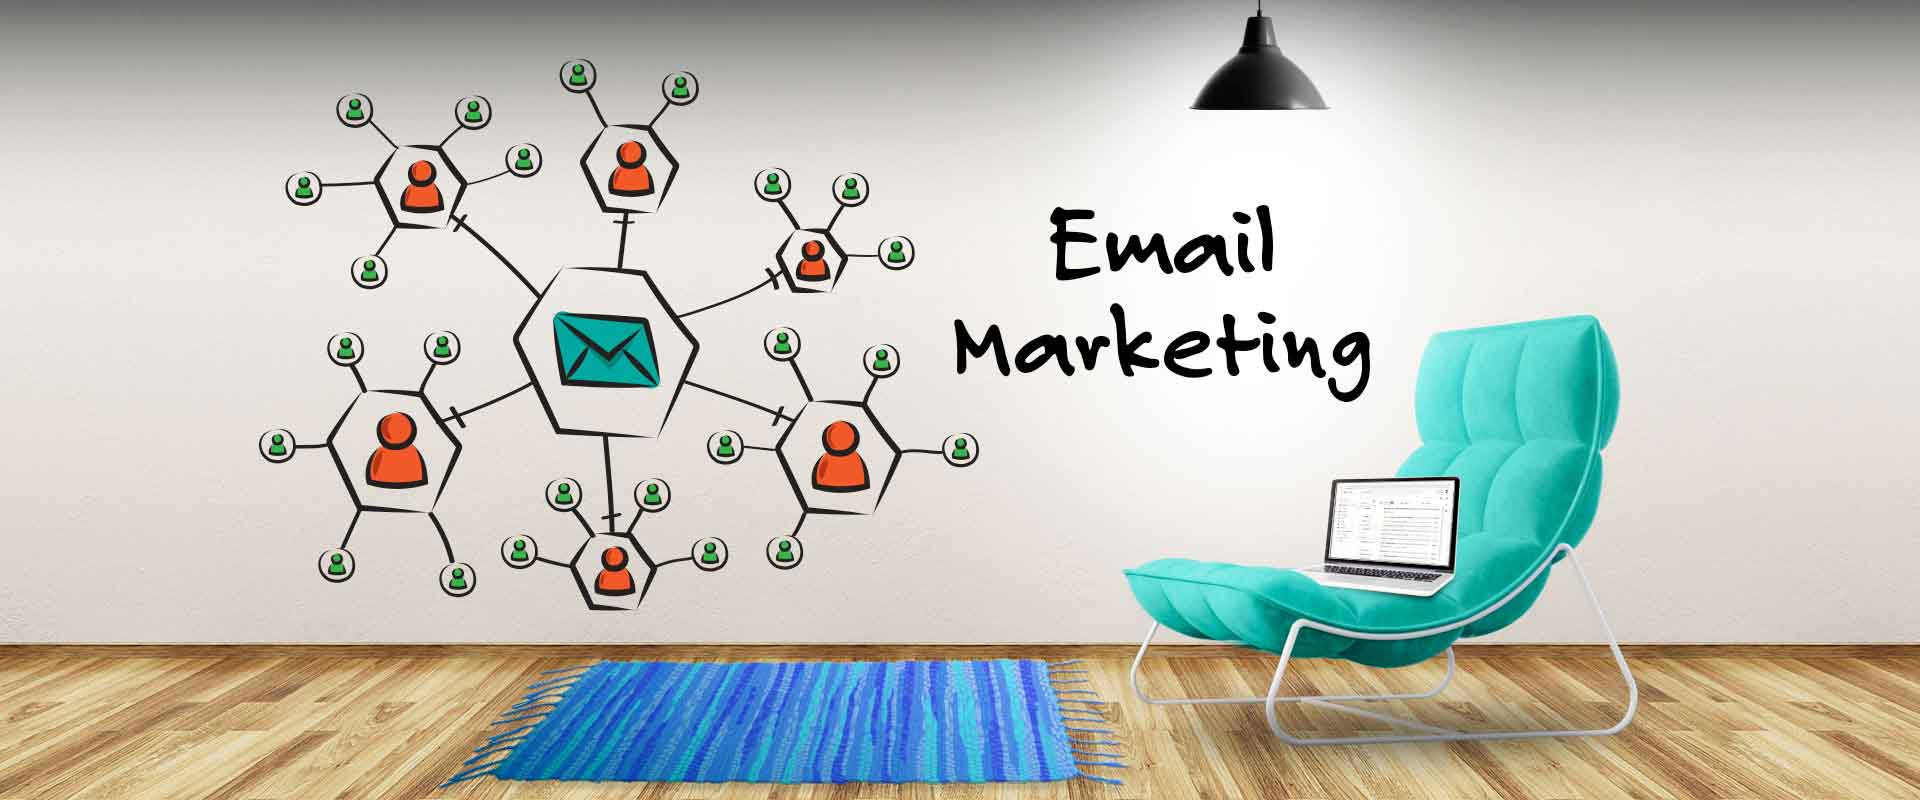 Email-Marketing-Banner-1